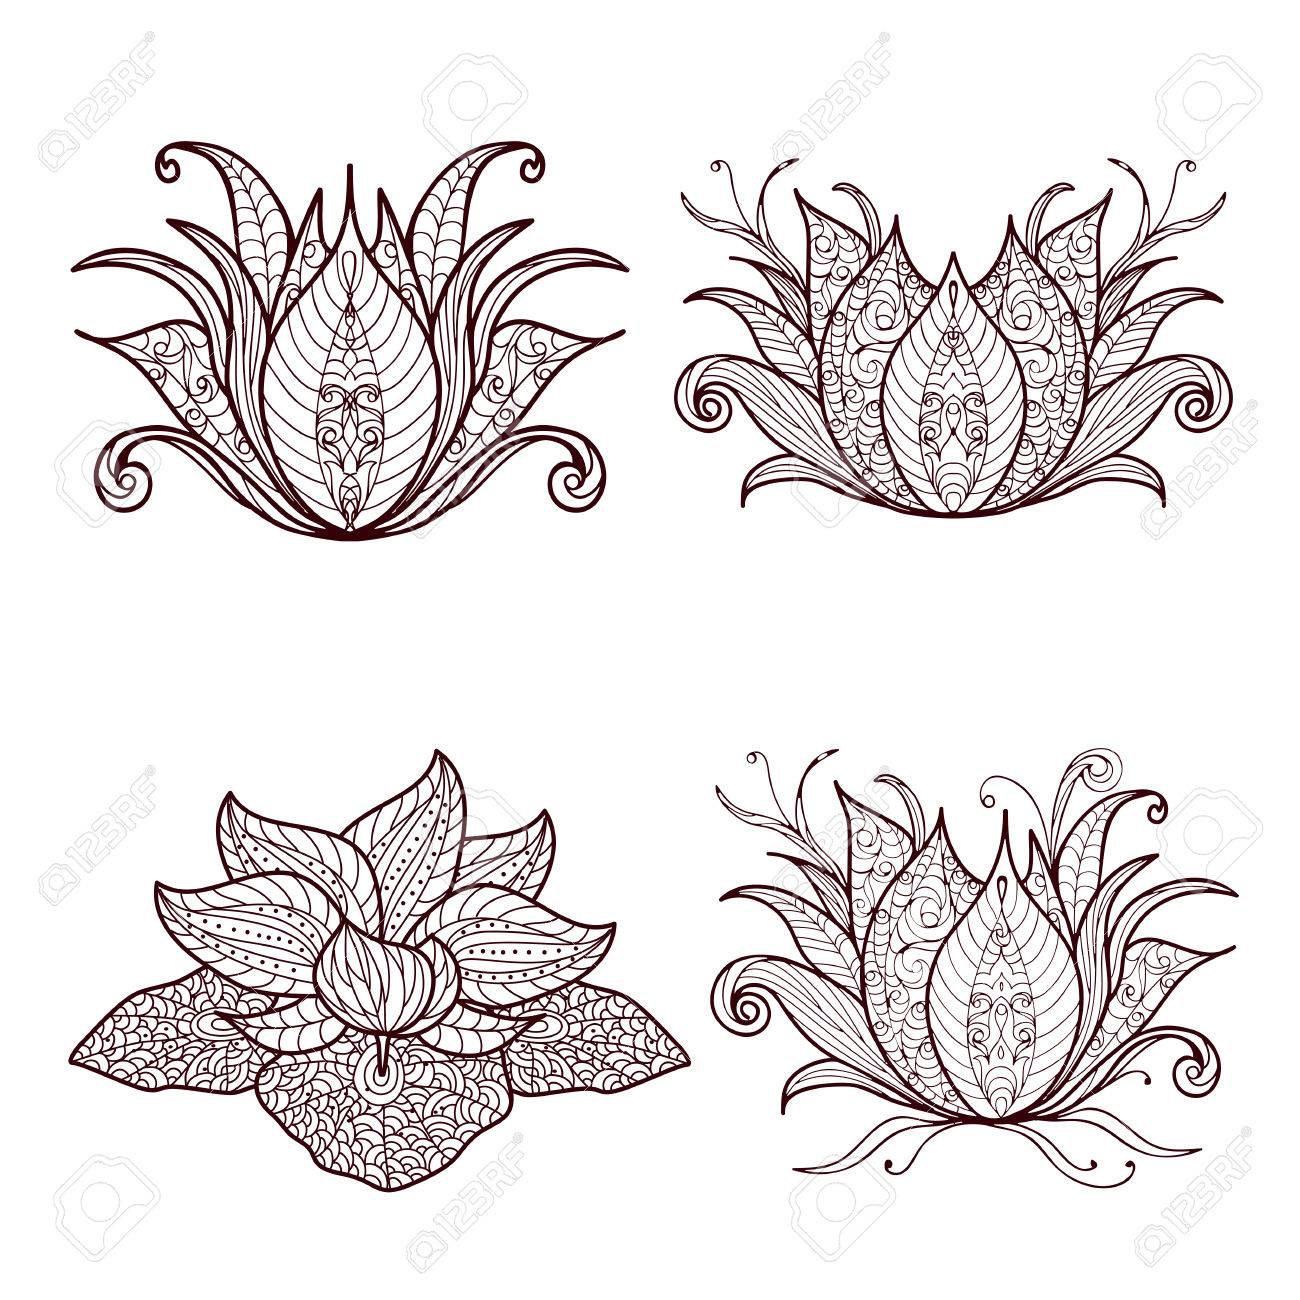 Hand drawn set of henna flower lotus elementsyoga designhendi hand drawn set of henna flower lotus elementsyoga designhendi tattoo doodles collection izmirmasajfo Image collections